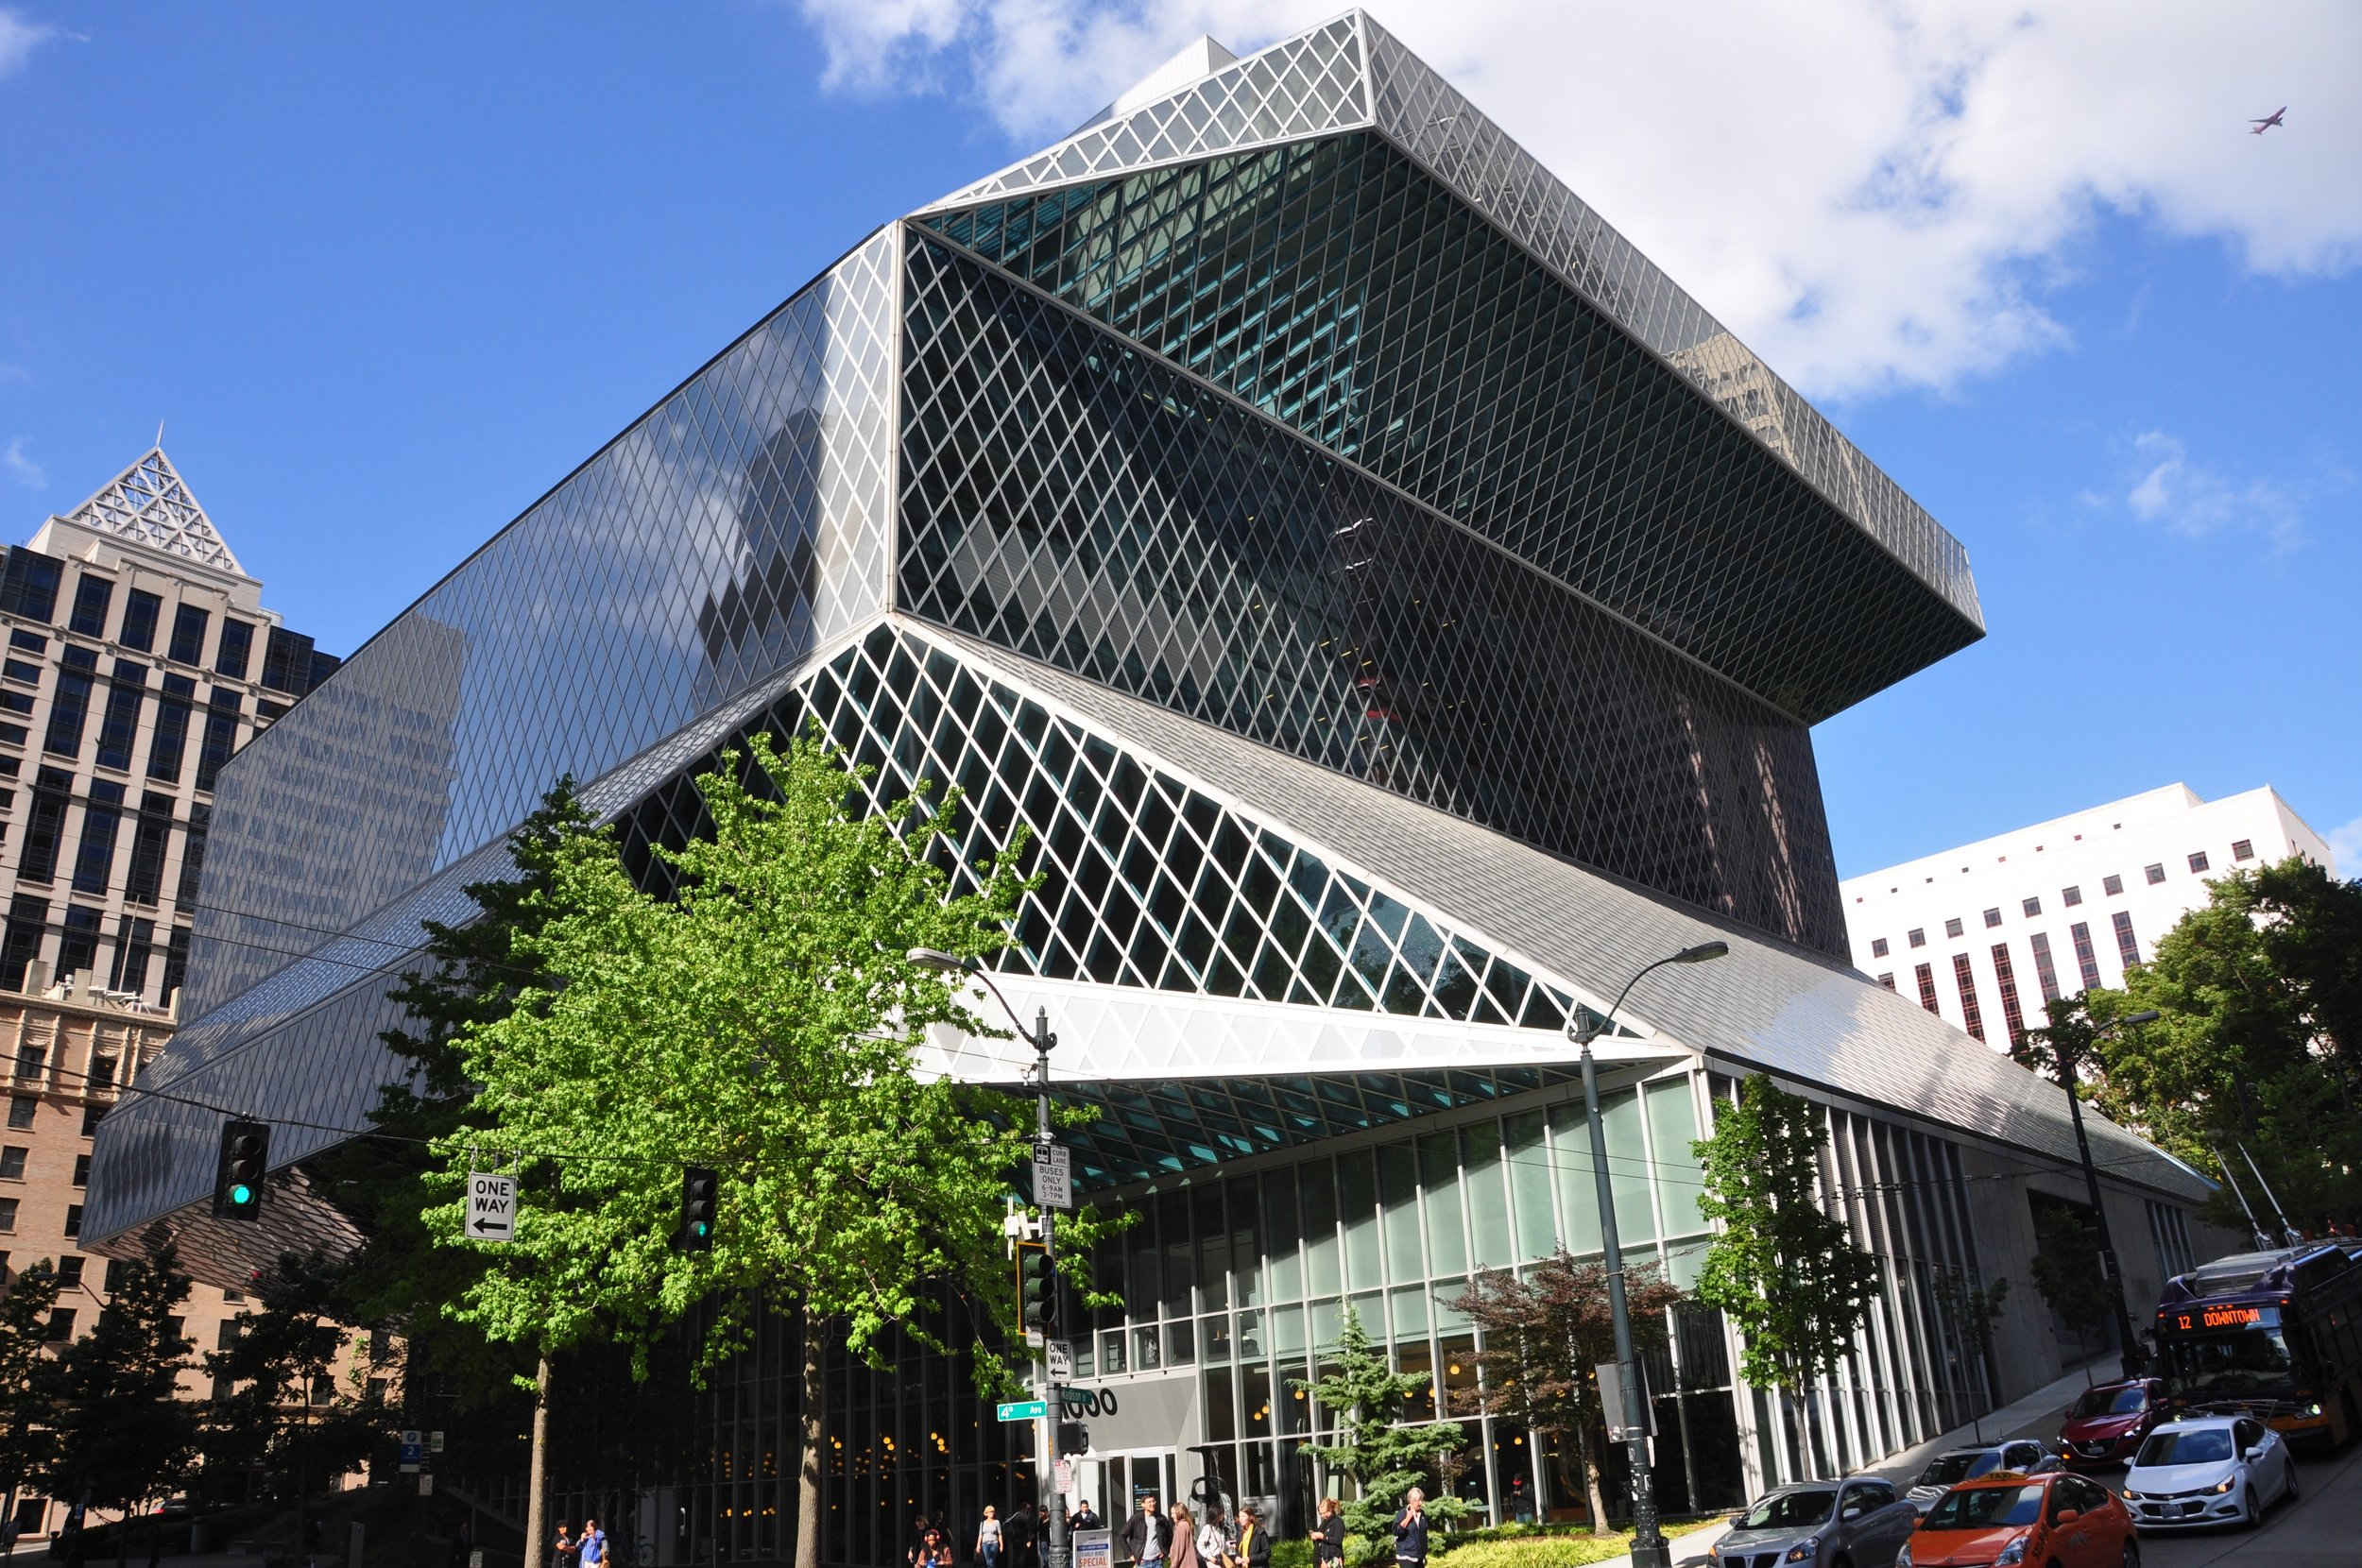 Seattle Central Library. Photo Source: Headers.